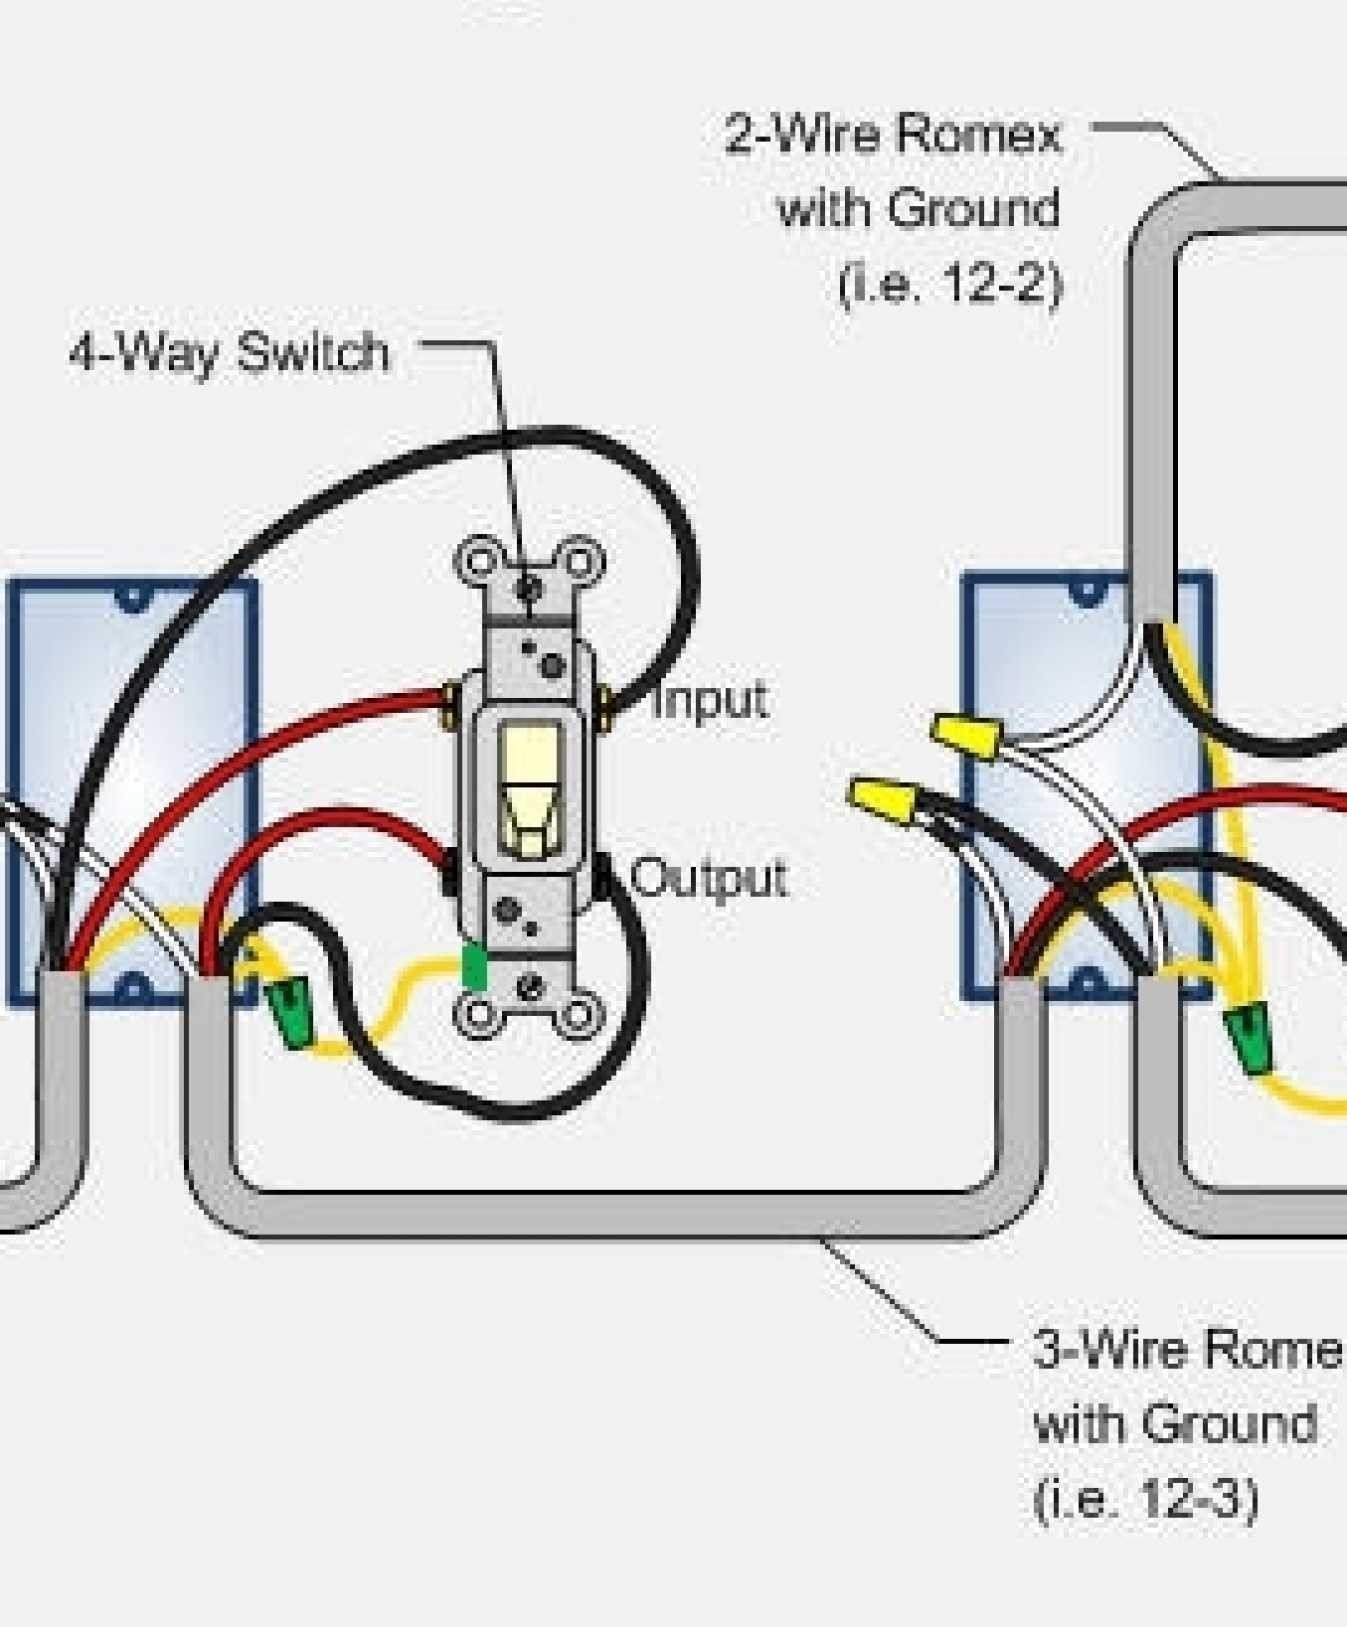 Wiring Diagram For 3 Way Switch Two LightsWiring Diagram